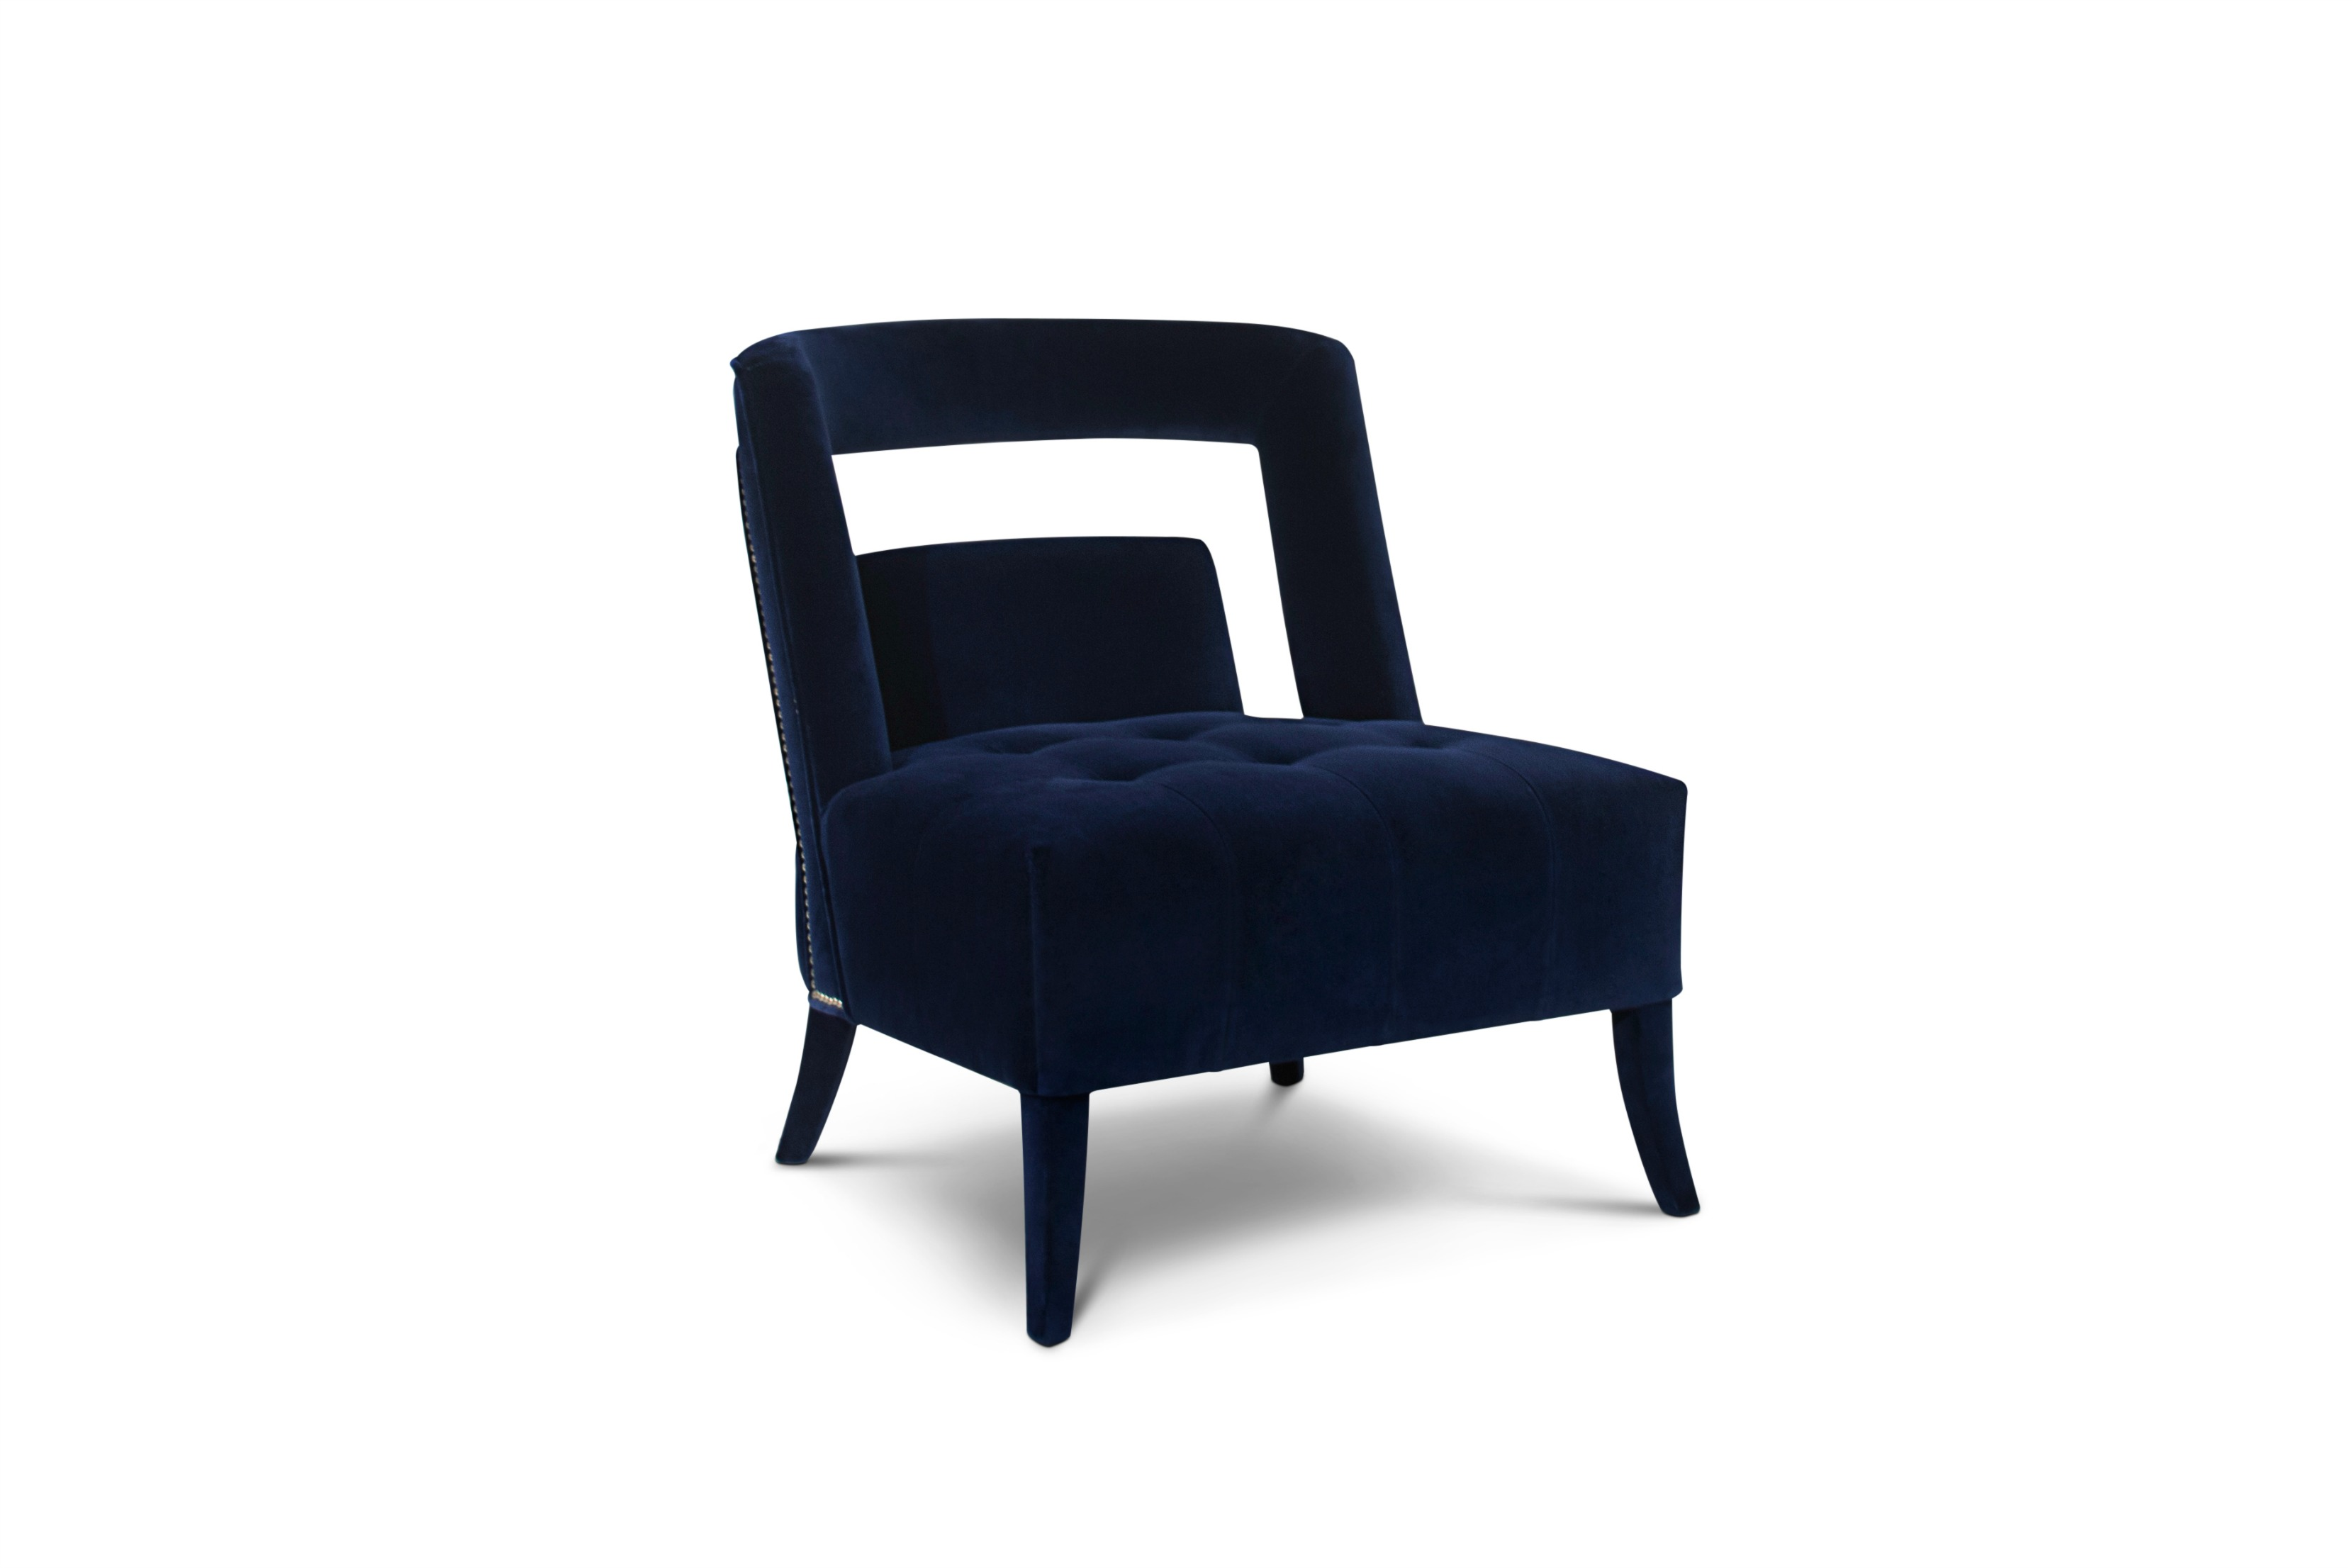 Covet London: The Intimate Design Experience covet london Covet London: The Intimate Design Experience naj armchair covet london